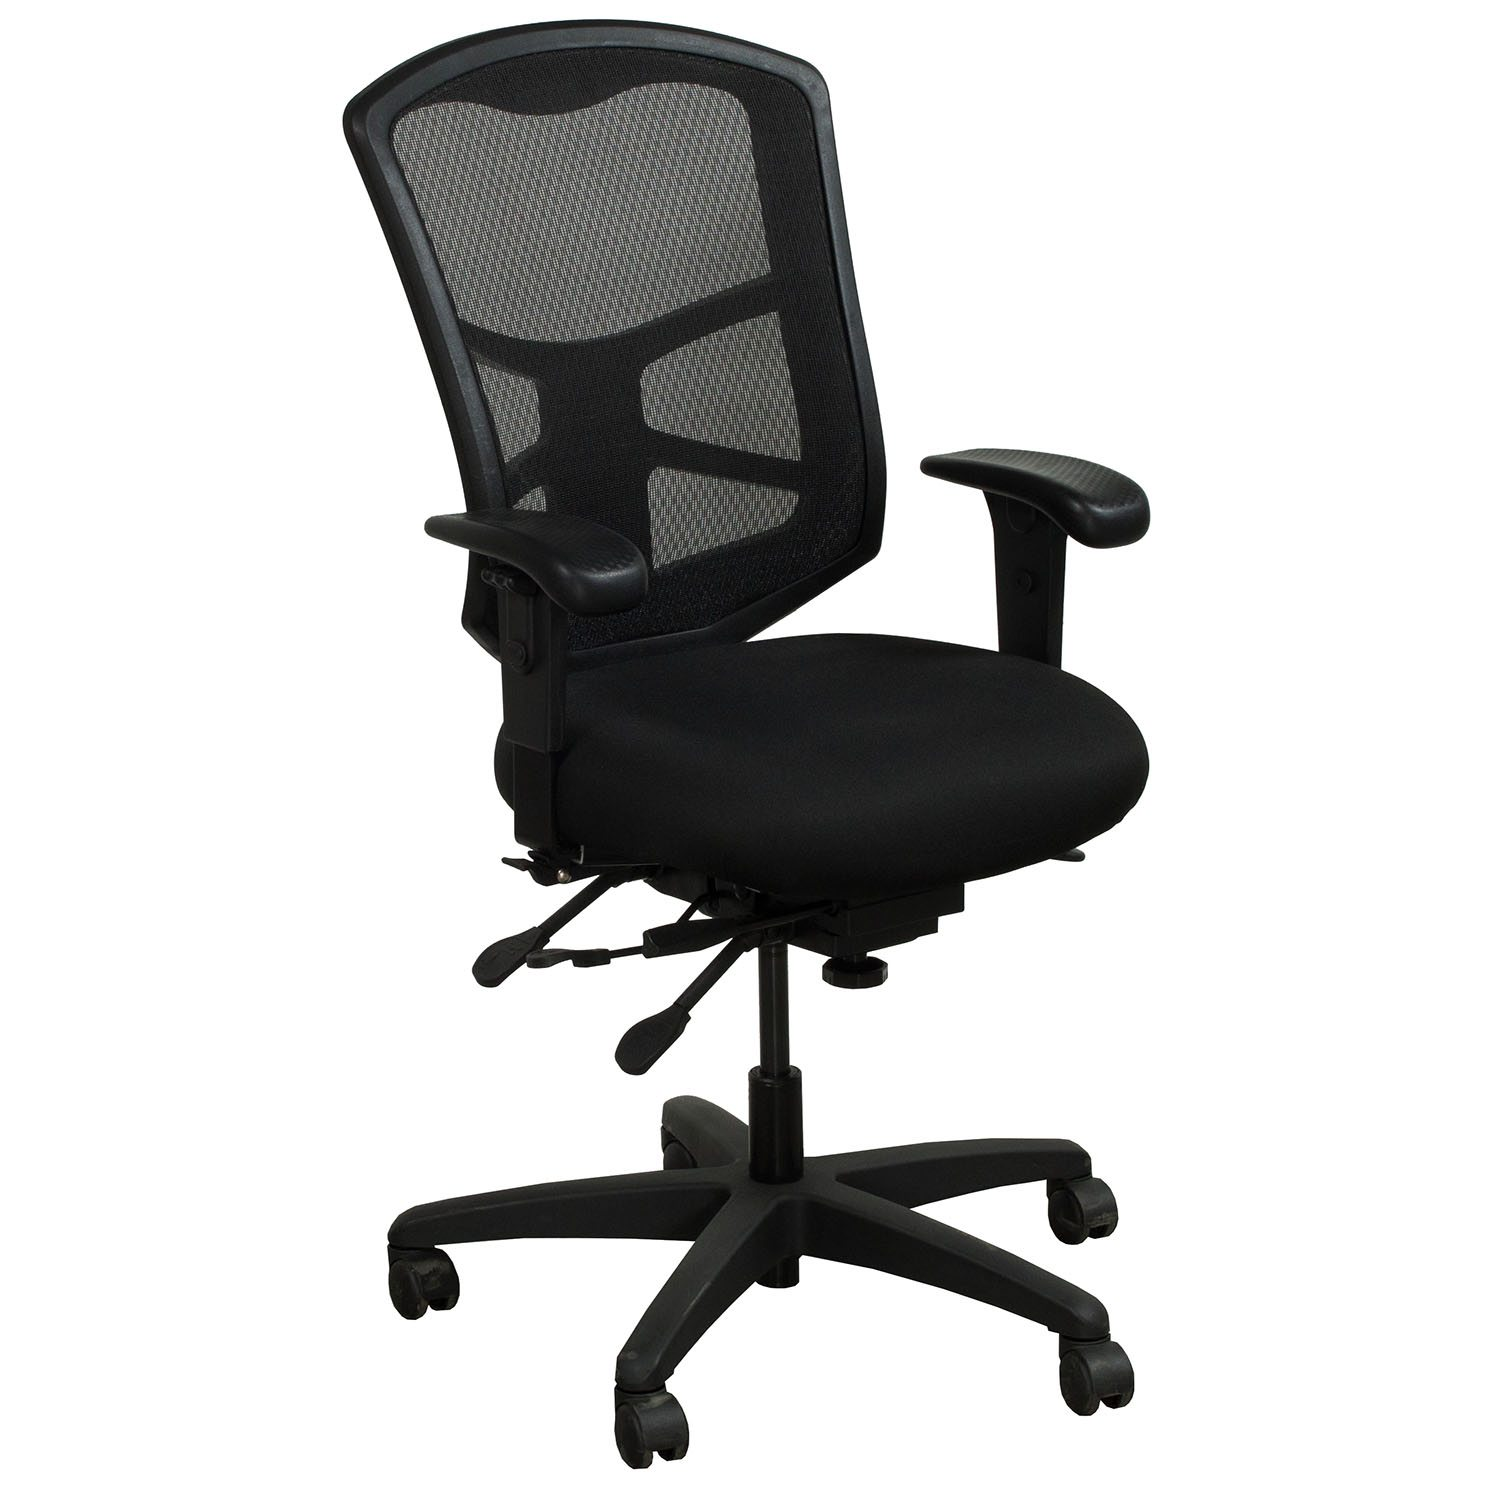 used office chairs cool for dorm rooms master ys88 mesh back task chair black